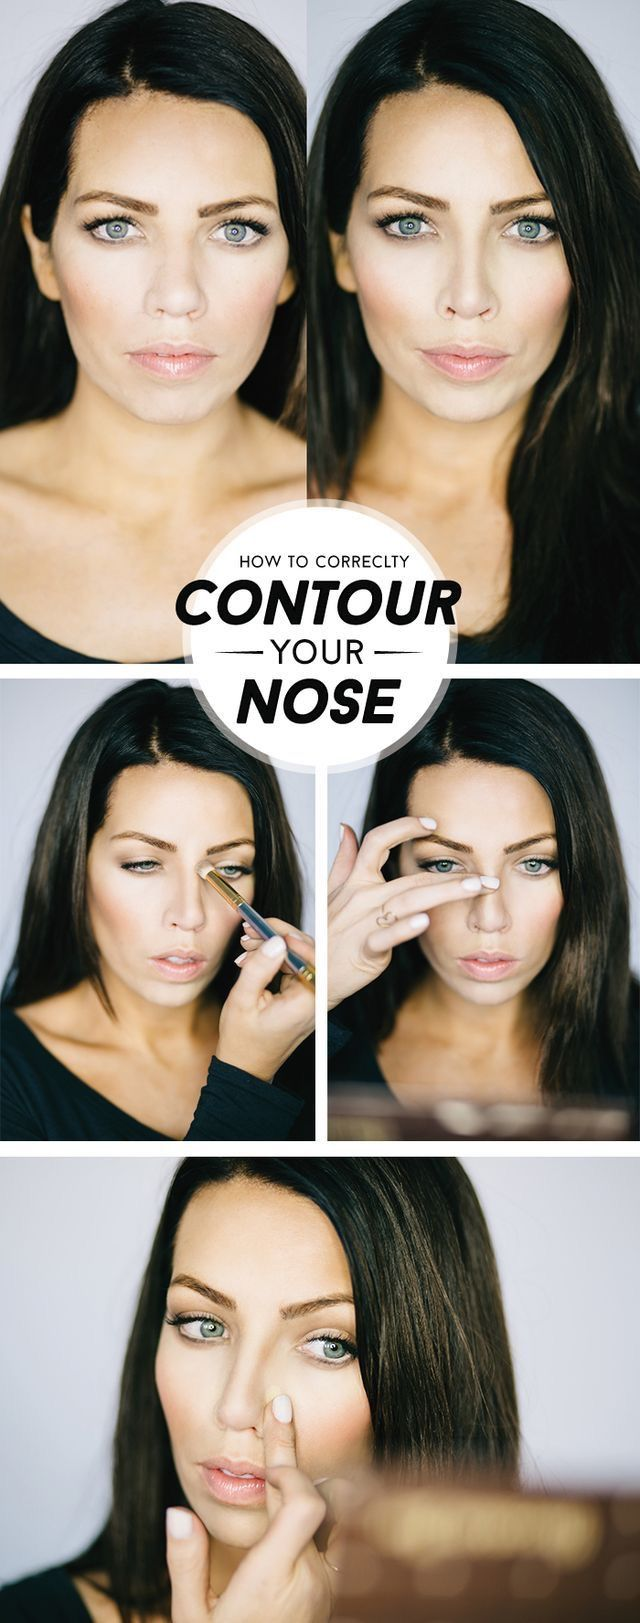 Look at how that contour completely changes the look of her nose